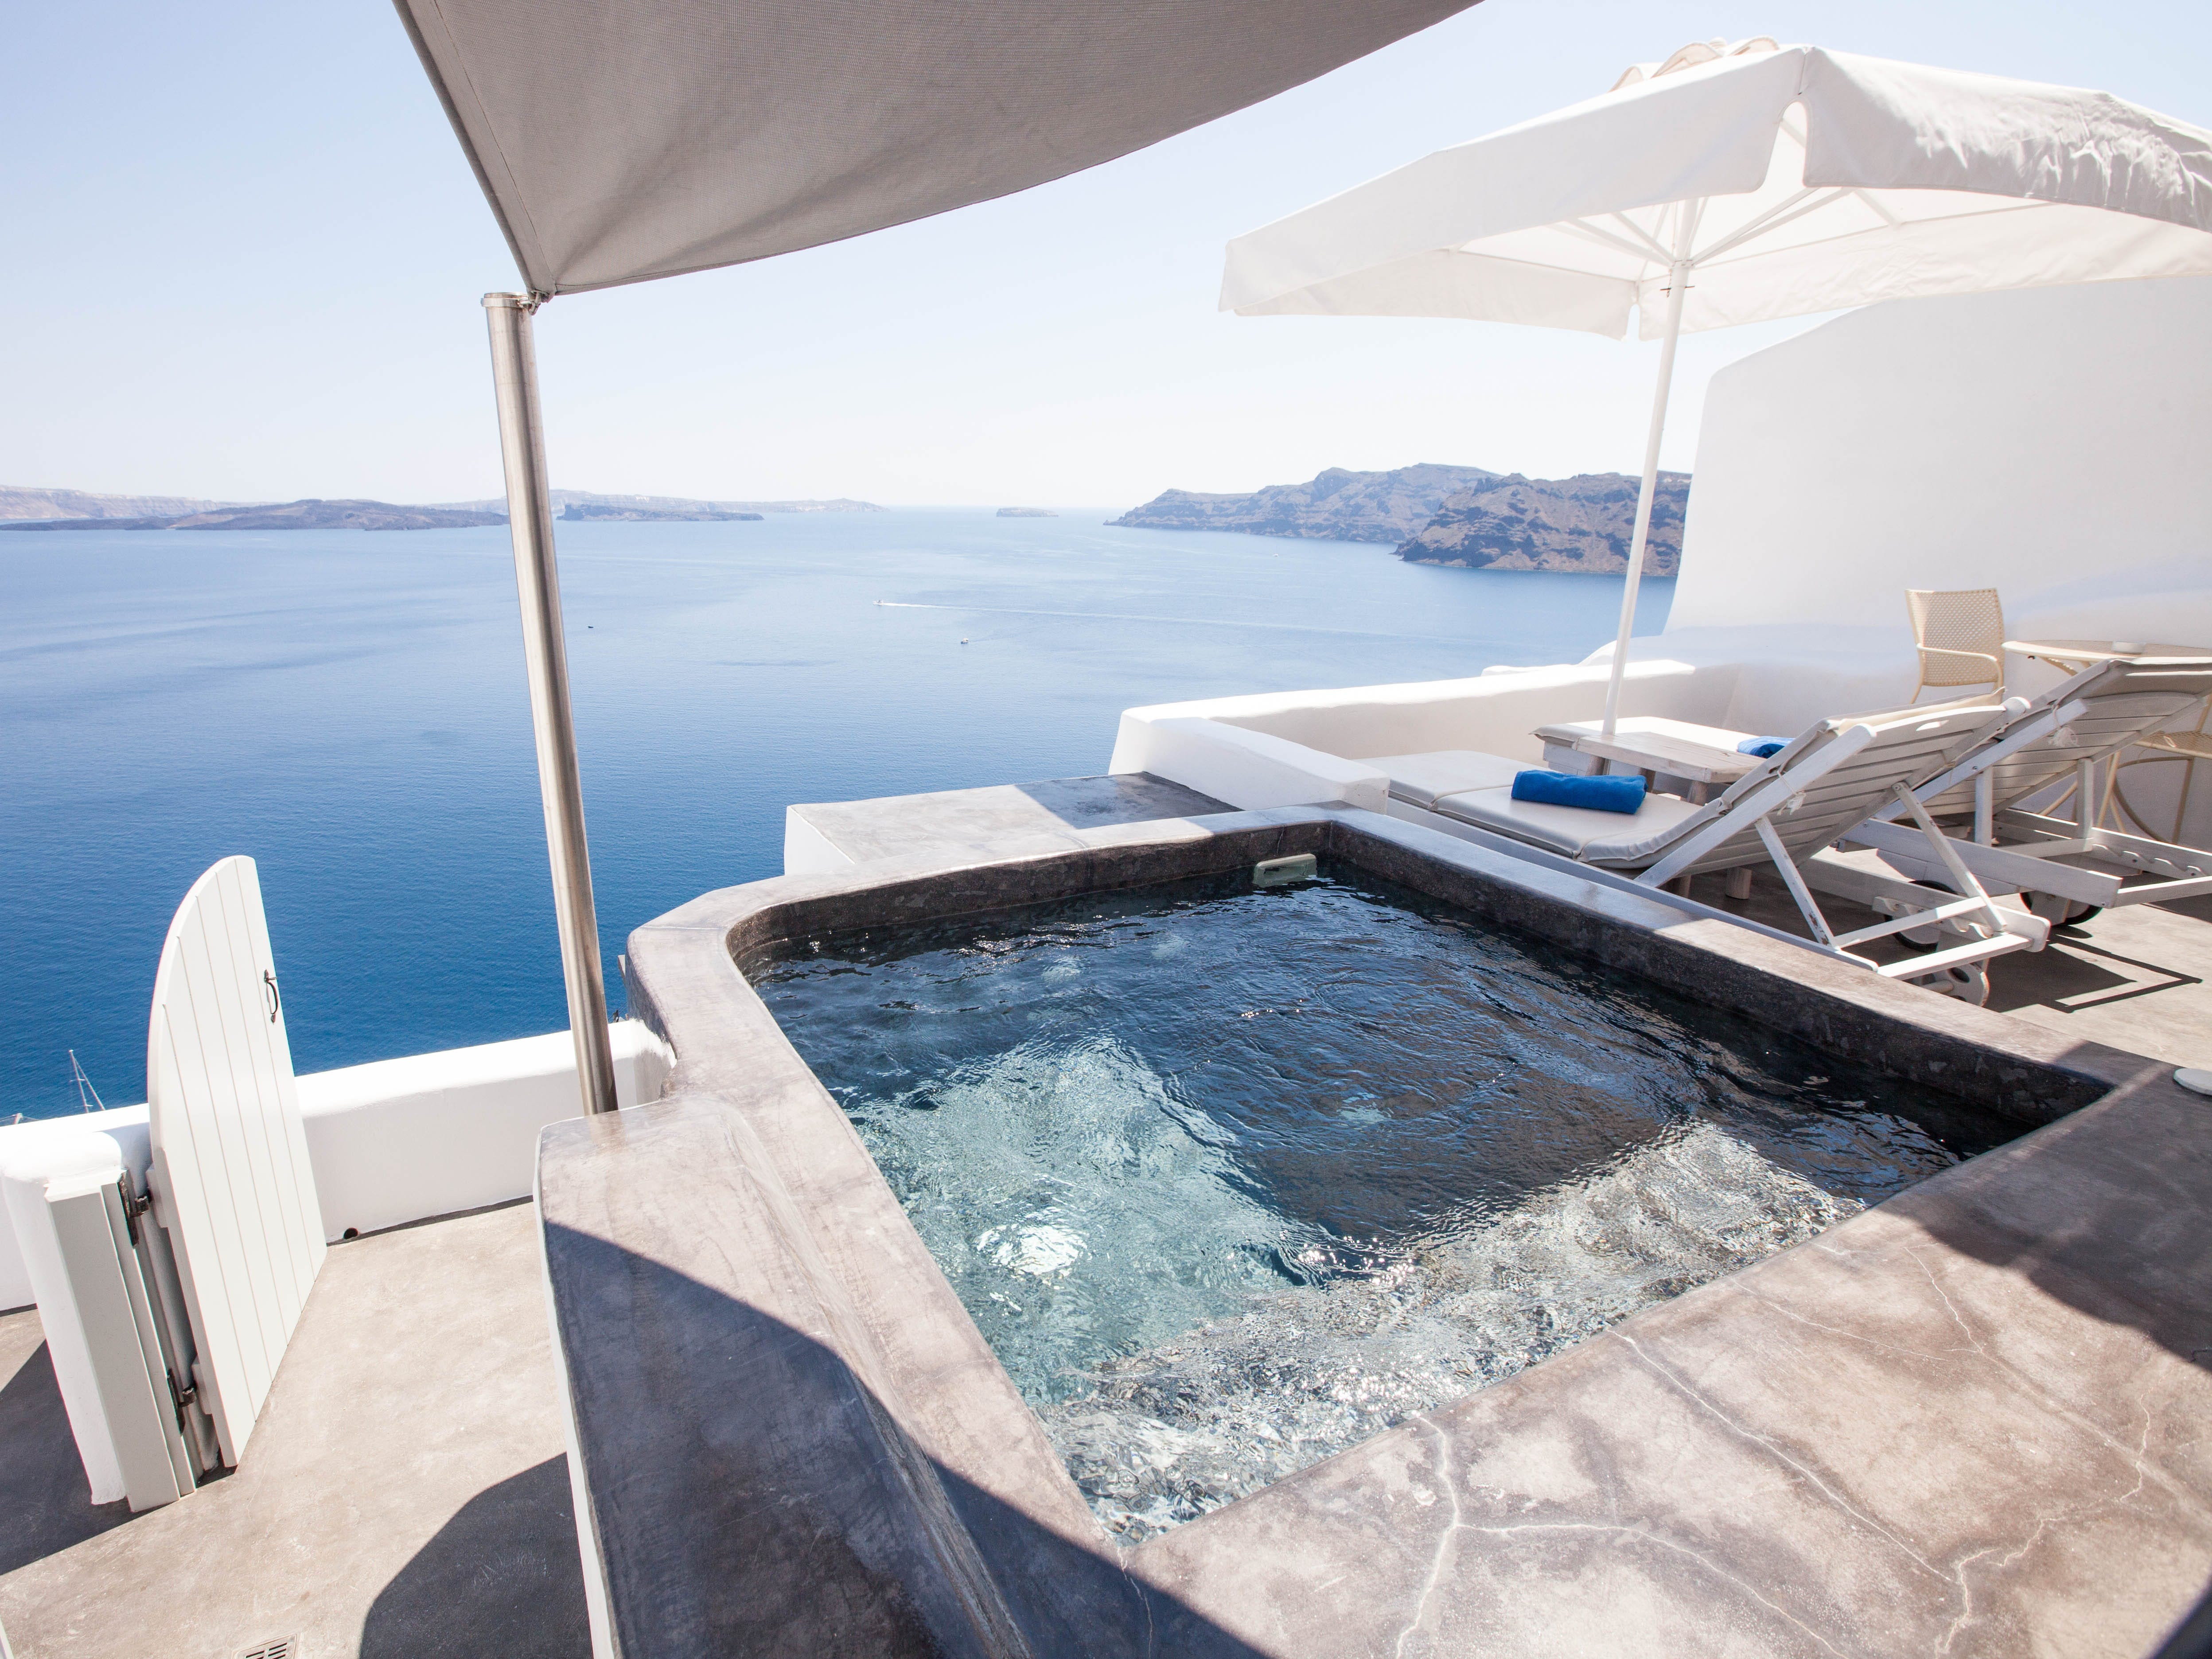 Andronis Boutique Hotel: There's romance to be found in every corner of the 14-room Andronis Boutique Hotel, from the kidney-shaped pool overlooking the crystal-blue Aegean to the cave-like quarters with private balconies, hot tubs and spectacular sea views (some even have private infinity pools). Toast to new beginnings at the large domed bar specializing in Greek wines, or at the open-air restaurant doling out traditional Greek cooking.